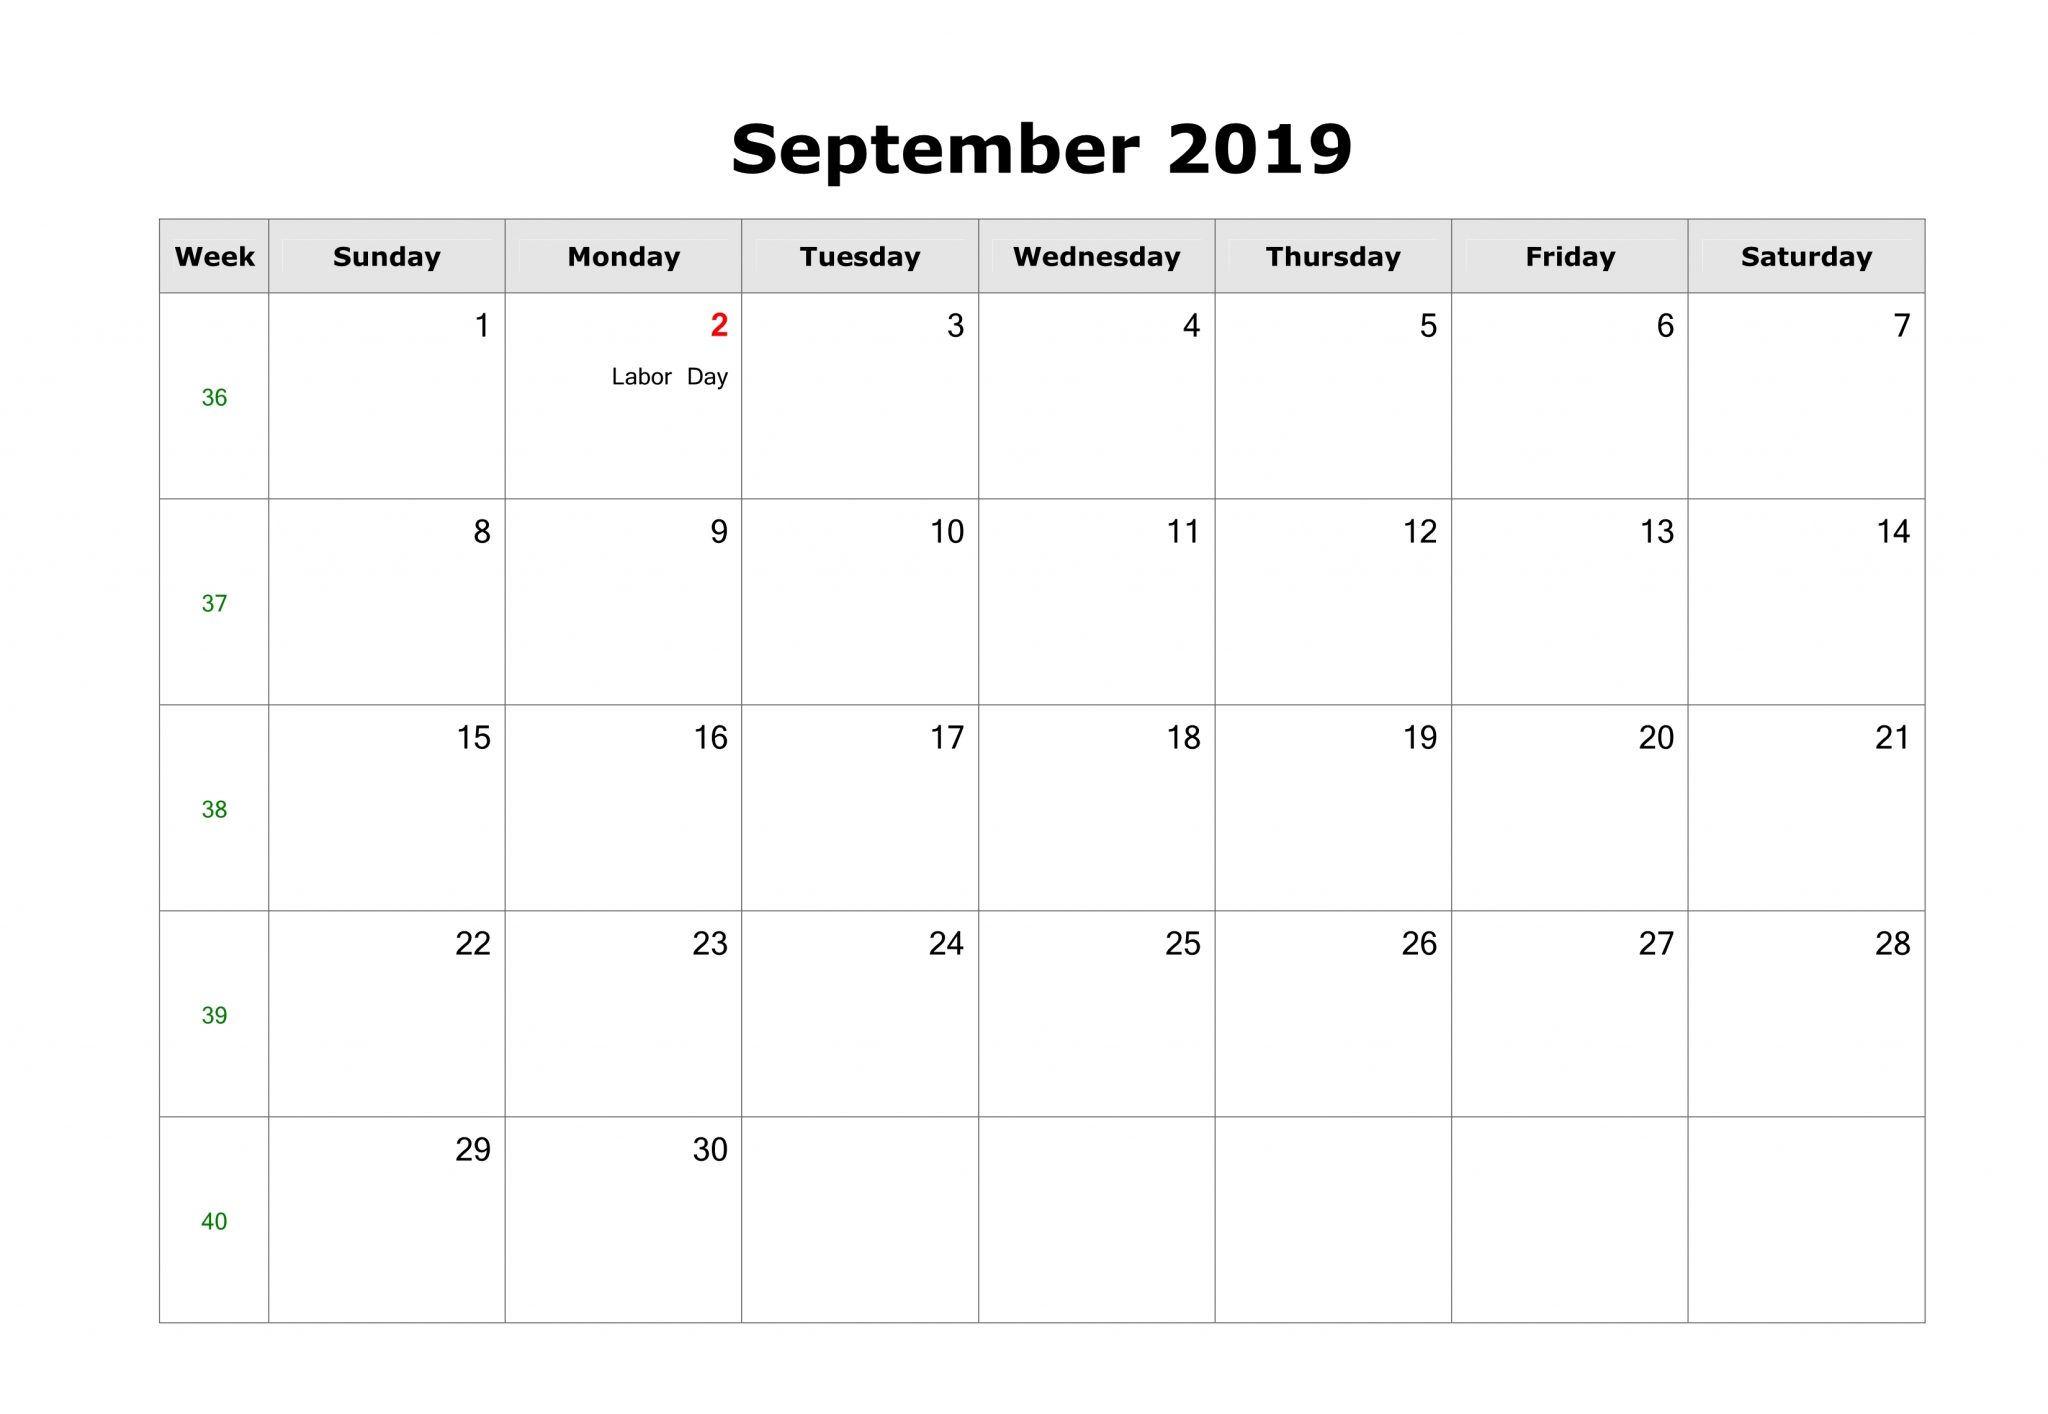 September 2019 Blank Calendar with US Holidays